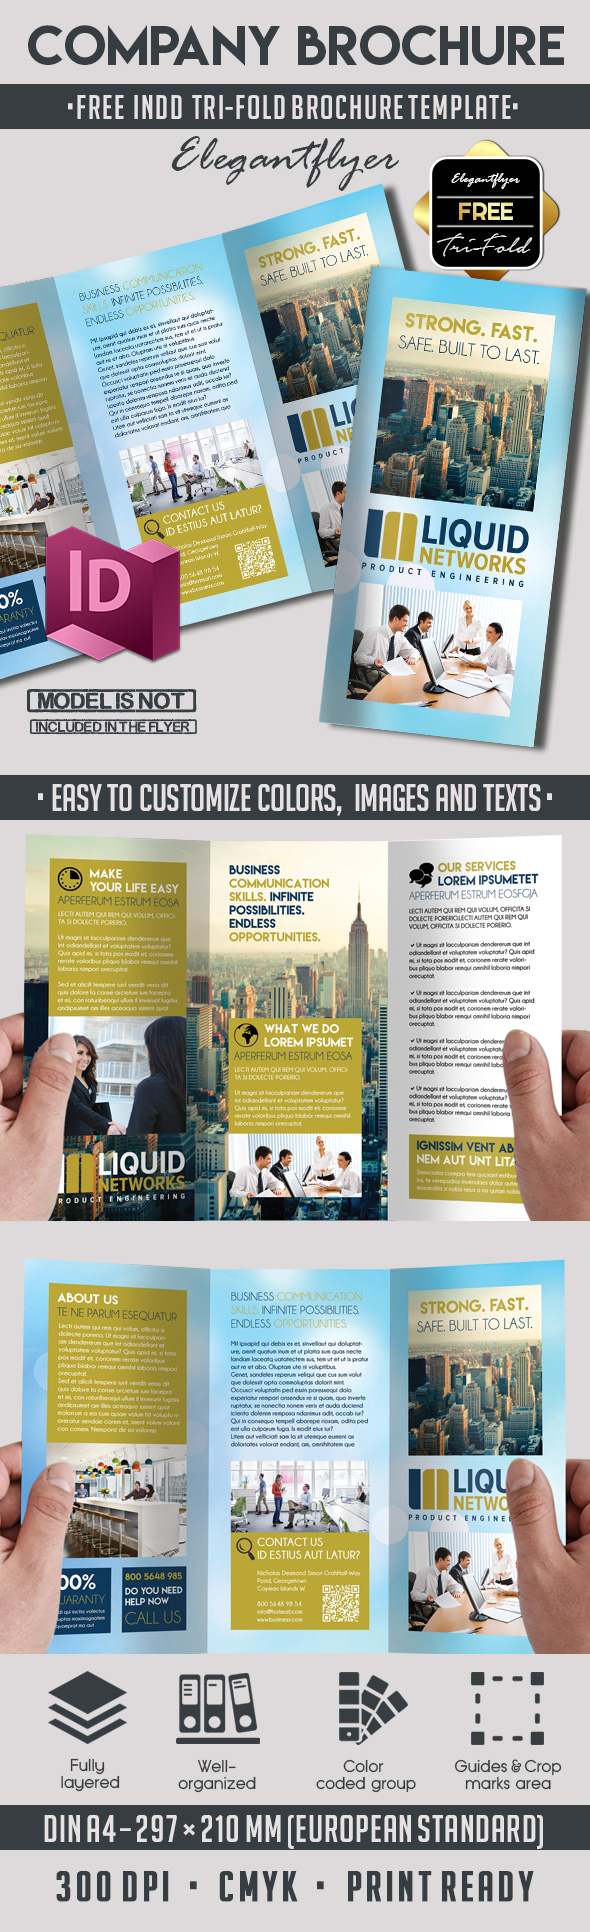 5 Powerful Free Adobe InDesign Brochures templates!